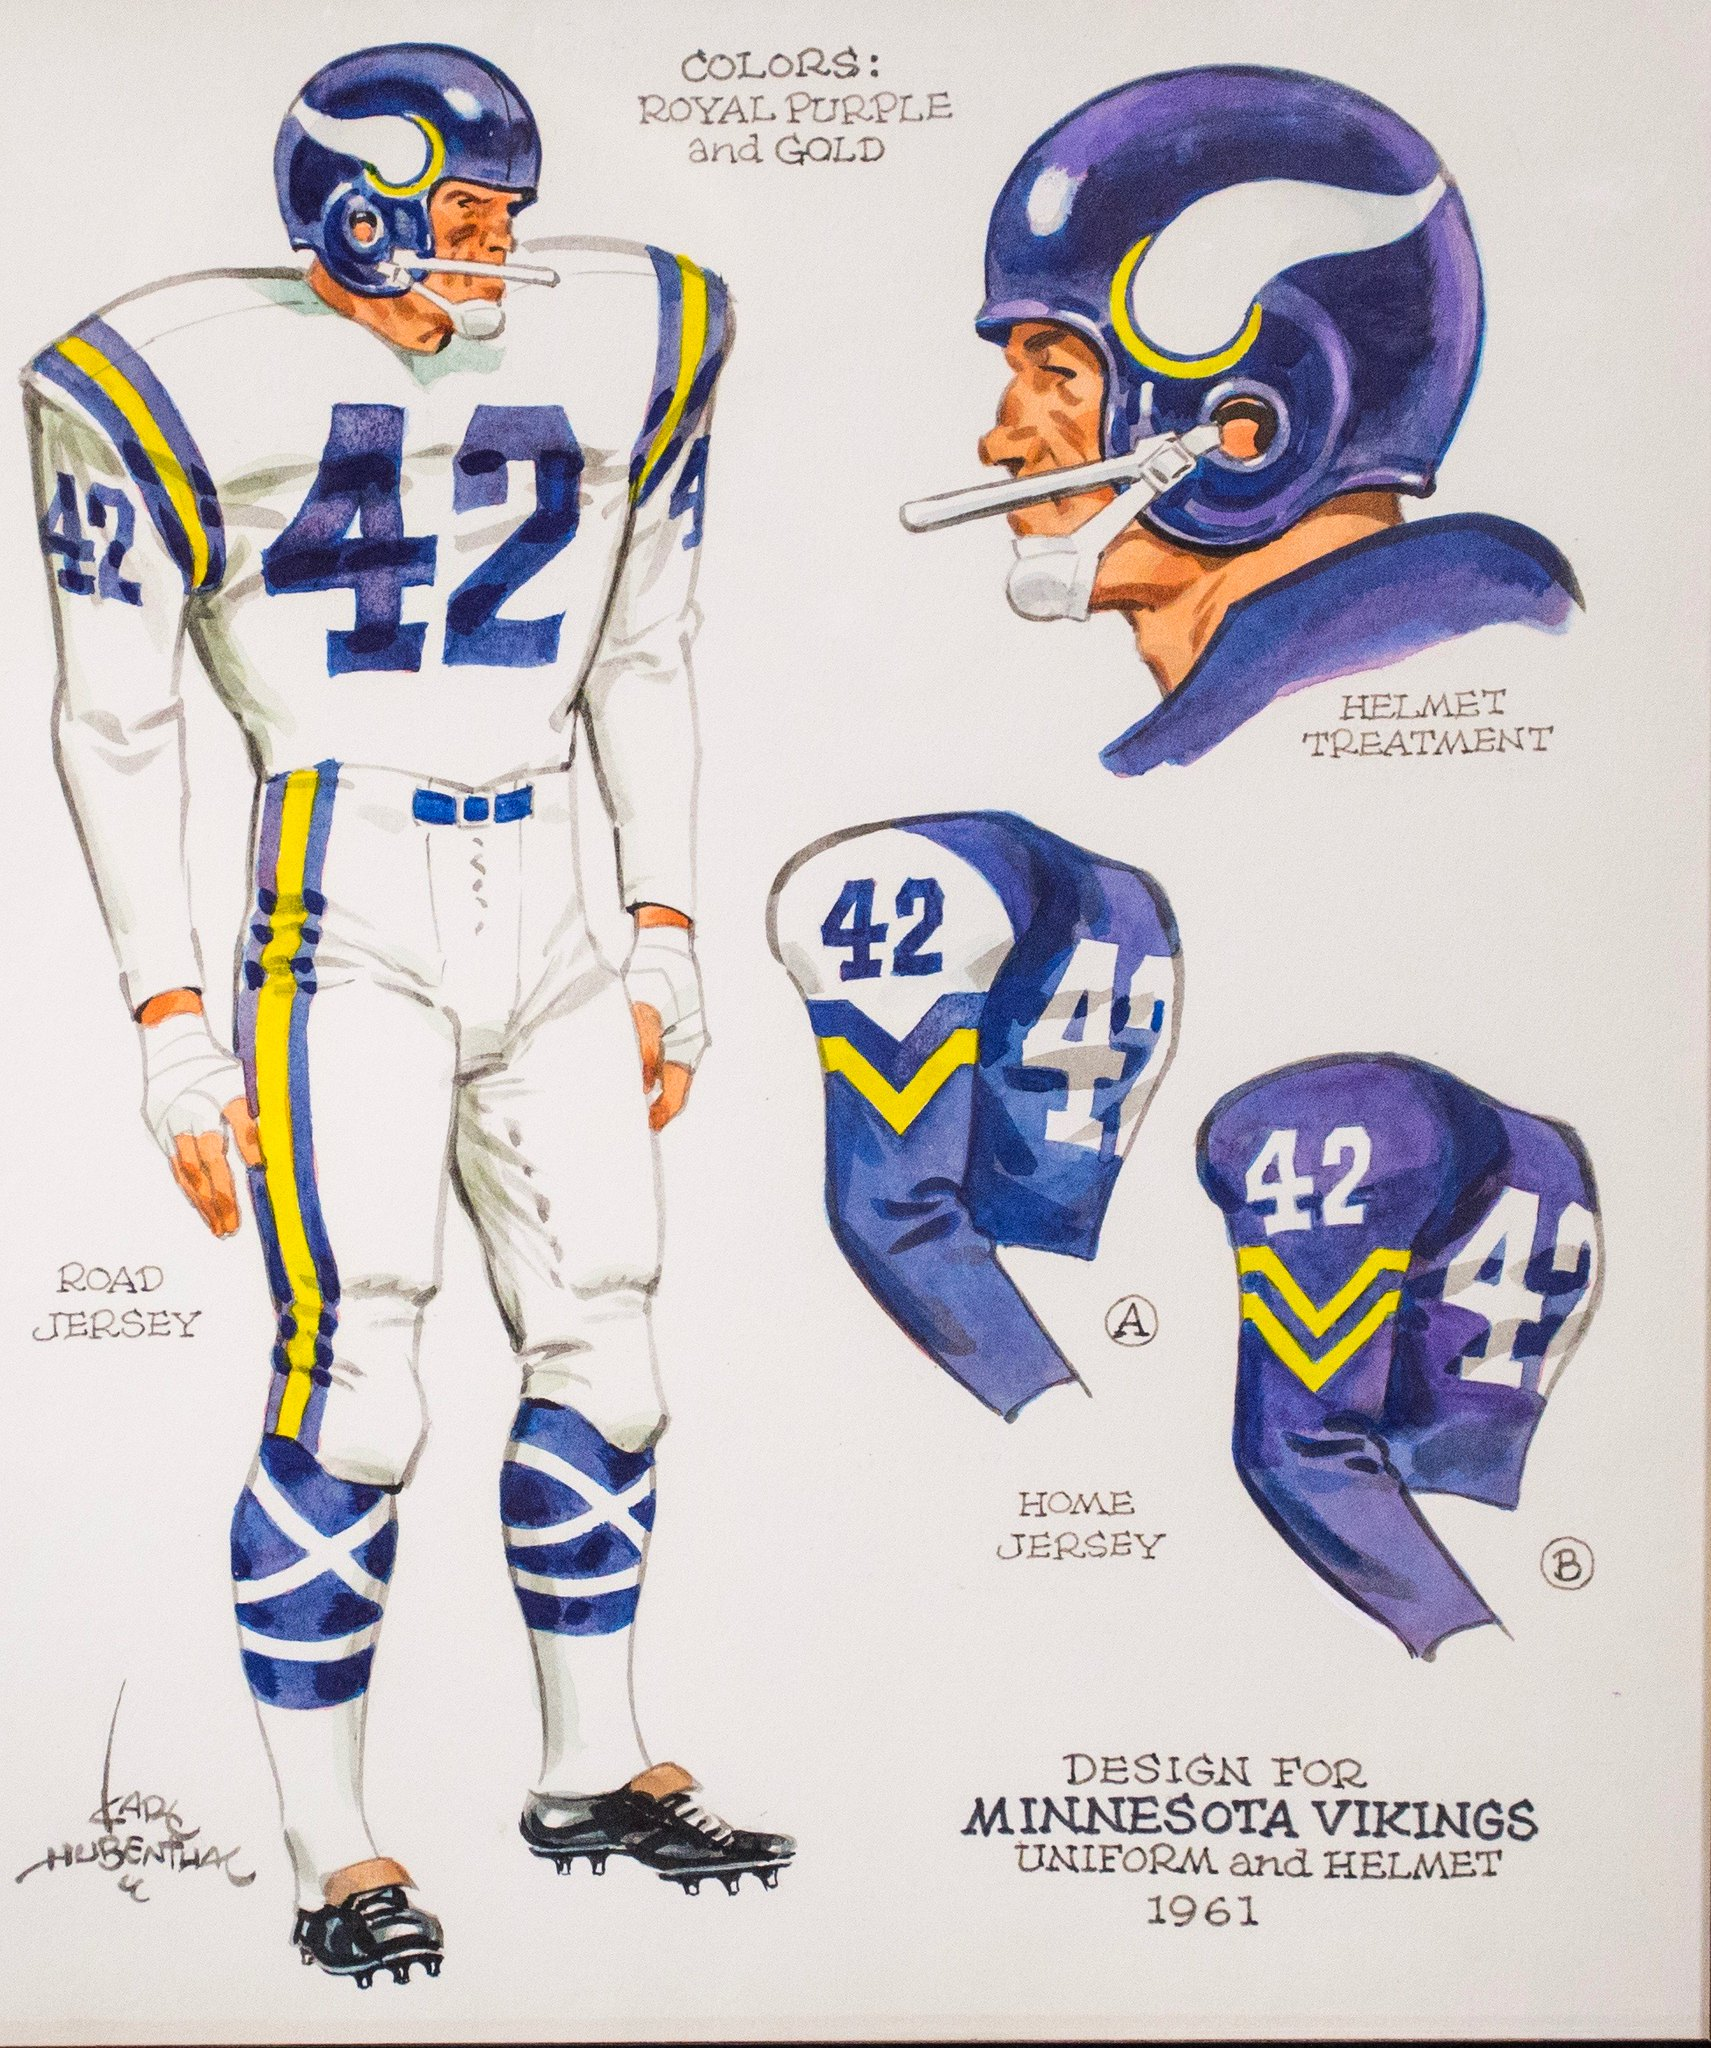 b5da3557183606 So instead the Vikes went with Northwestern striping — which is exactly  what the Rams were wearing at the time.